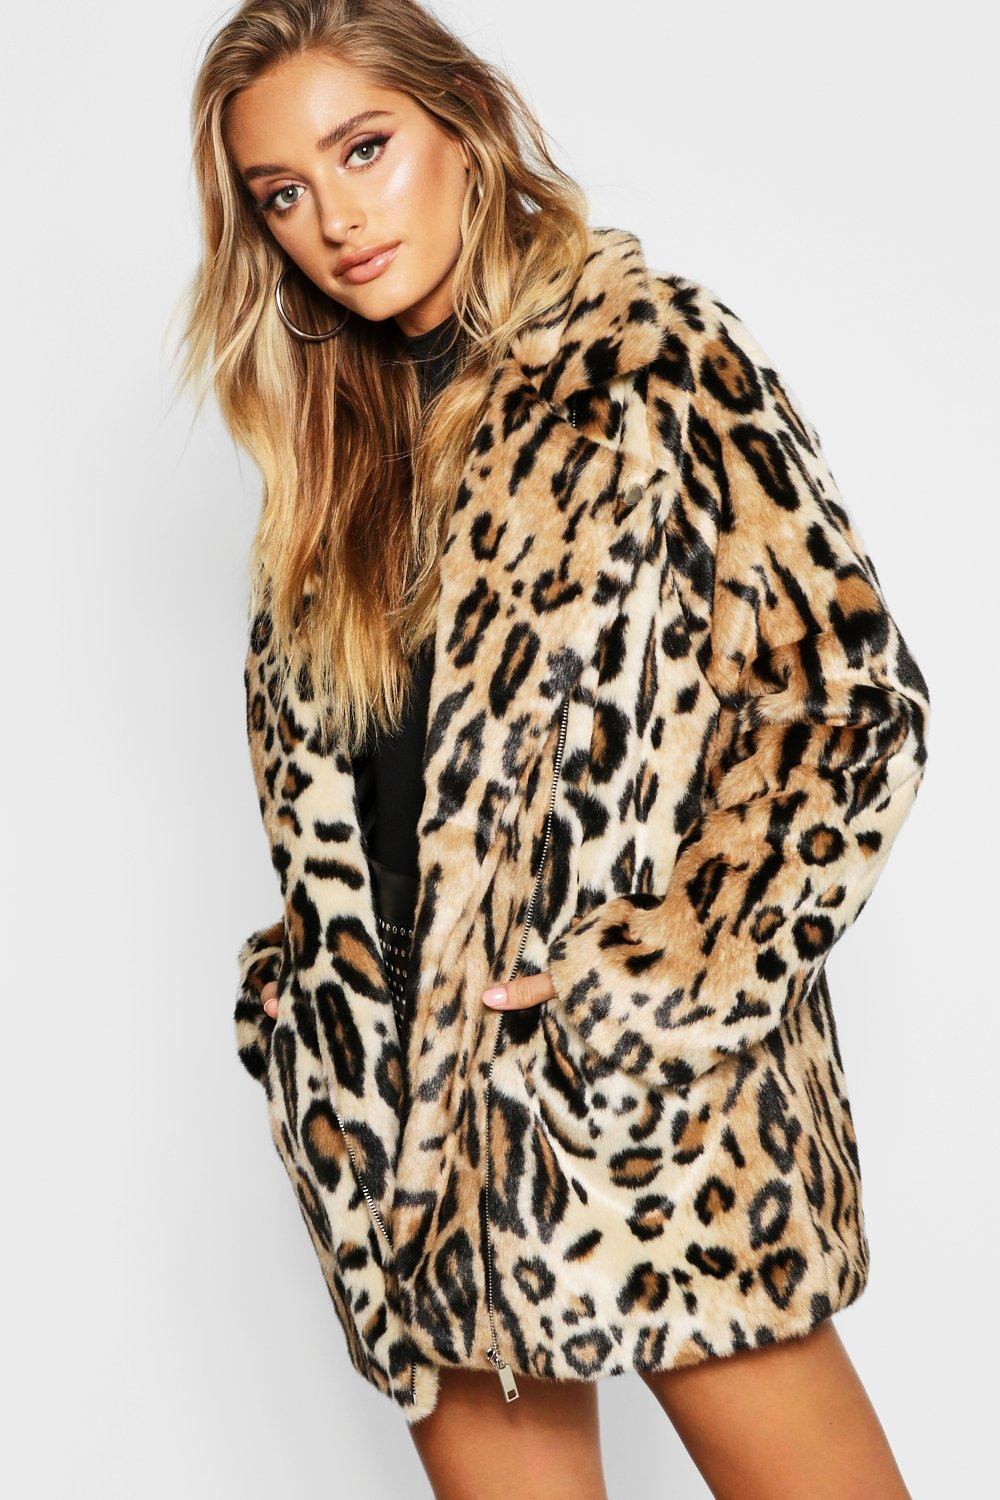 Купить Coats & Jackets, Leopard Faux Fur Coat, boohoo